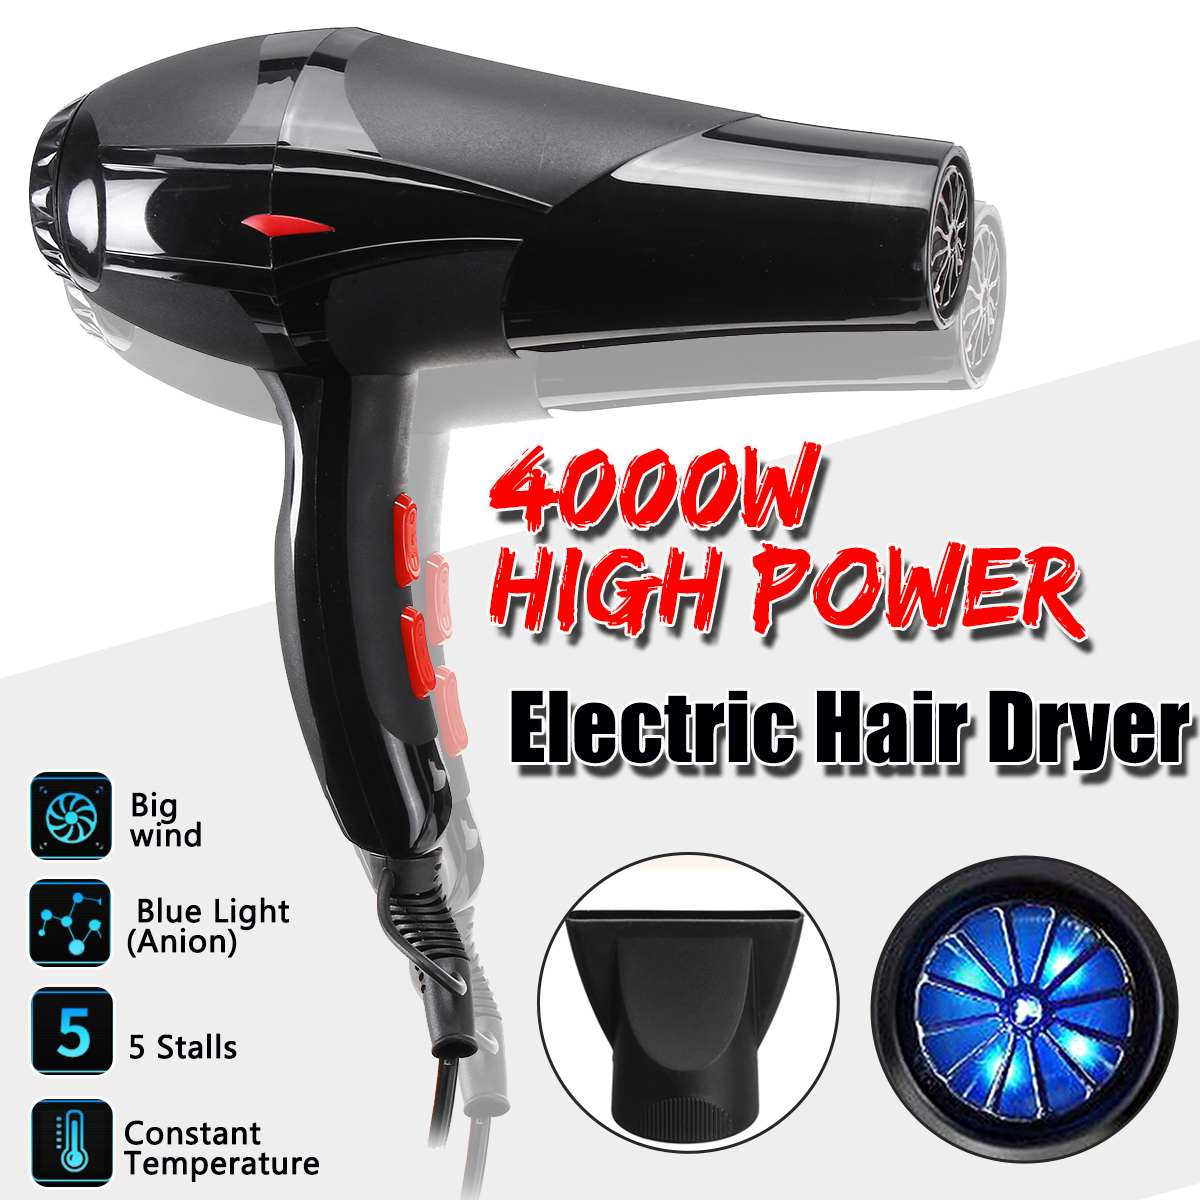 Professional 4000W Strong Power Hair Dryer For Anion Hairdressing Barber Salon Tool Blow Dryer Low Hairdryer Hair Dryer Fan 220V